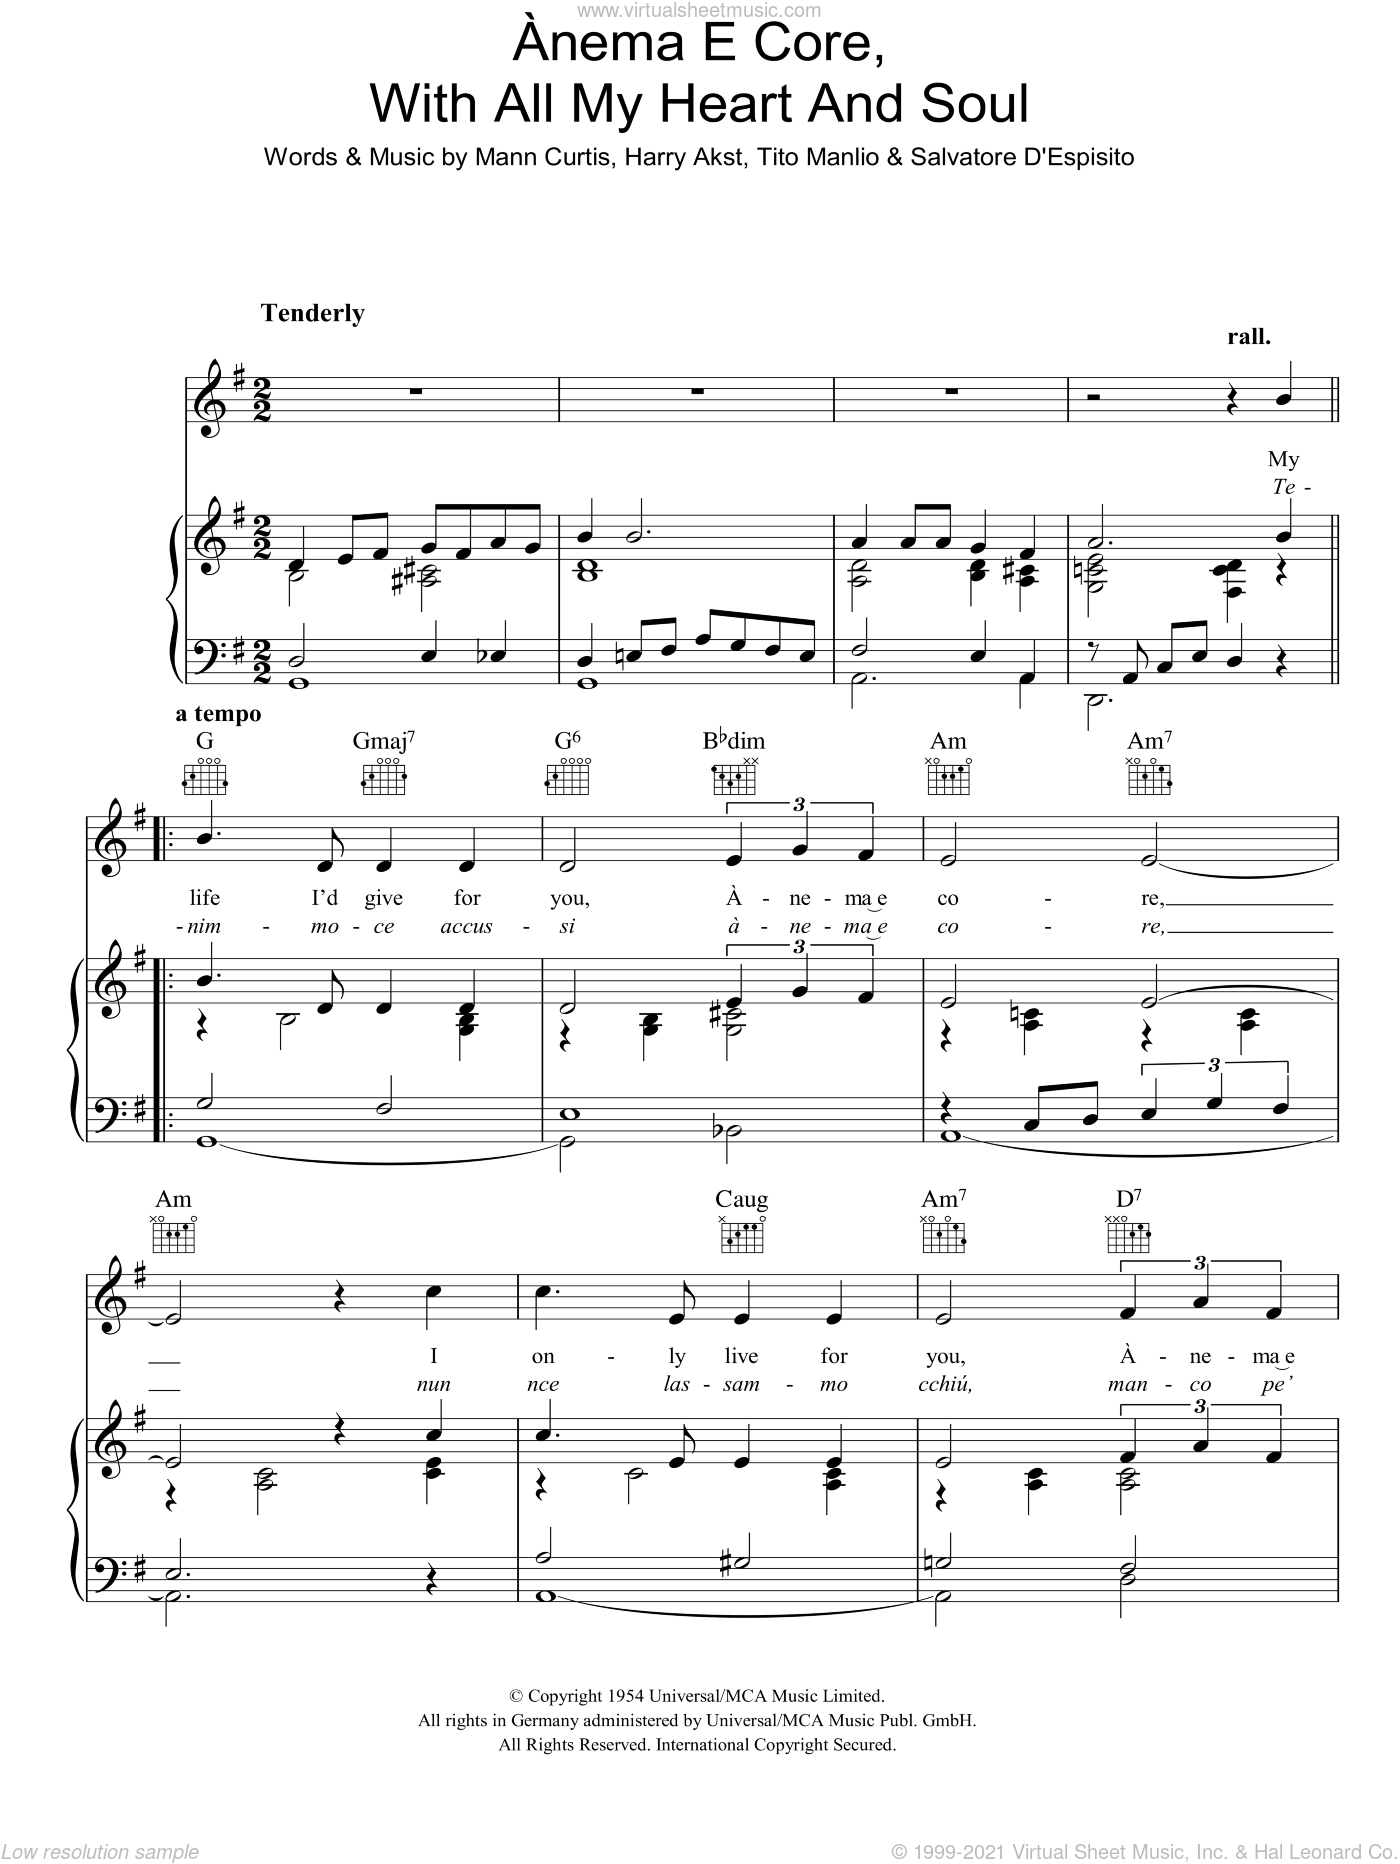 Anema E Core (With All My Heart And Soul) sheet music for voice, piano or guitar by Eddie Fisher, Harry Akst, Mann Curtis and Tito Manlio, intermediate skill level